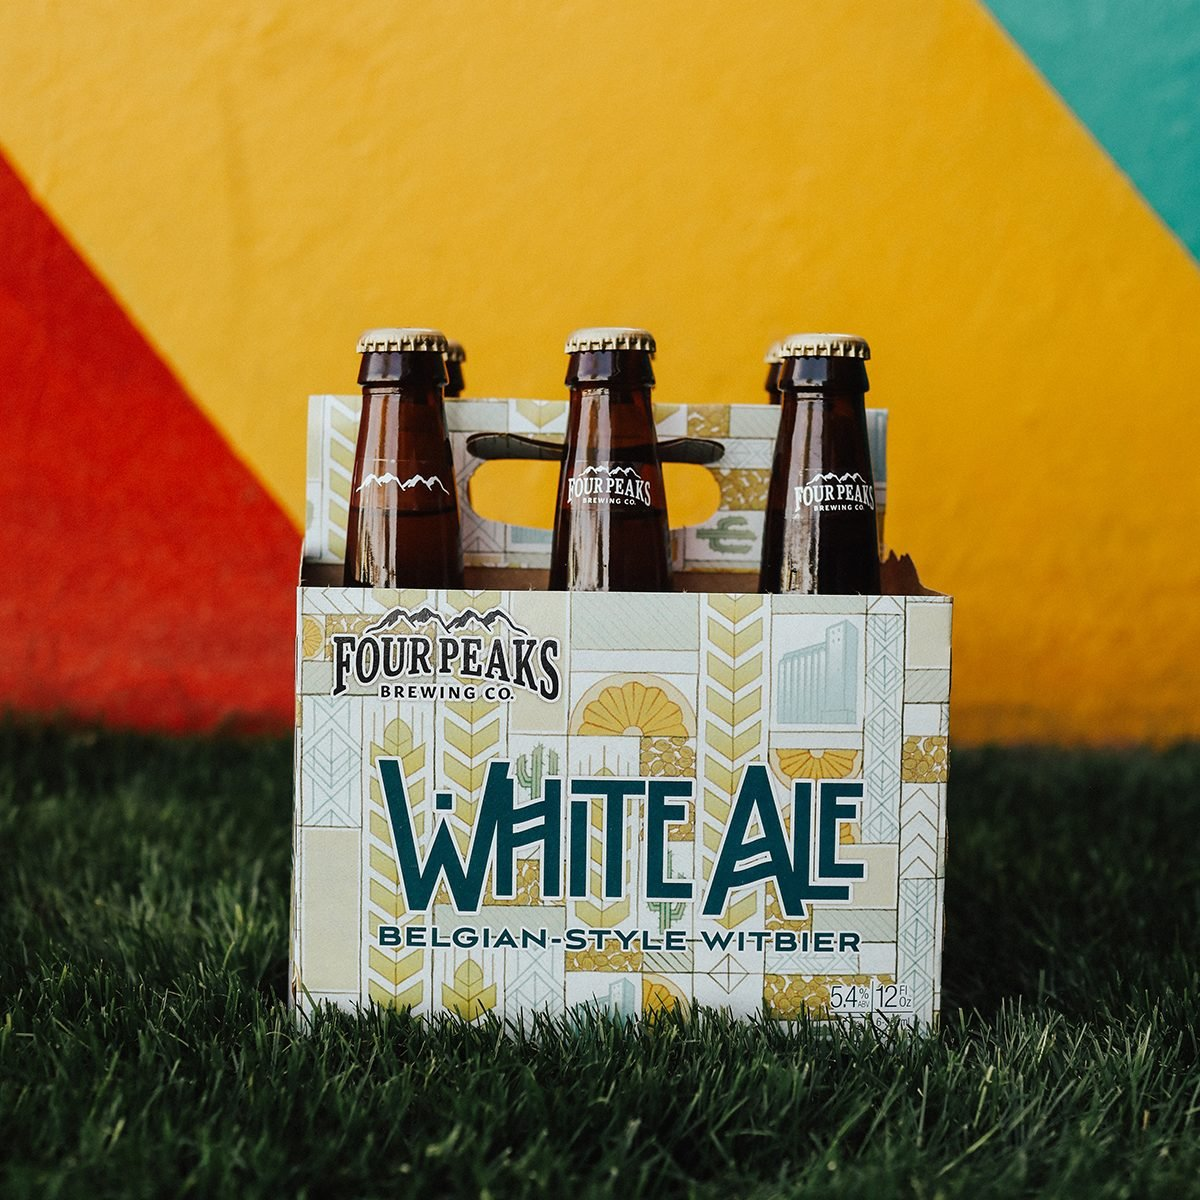 Four Peaks White Ale, a Belgian-style witbier